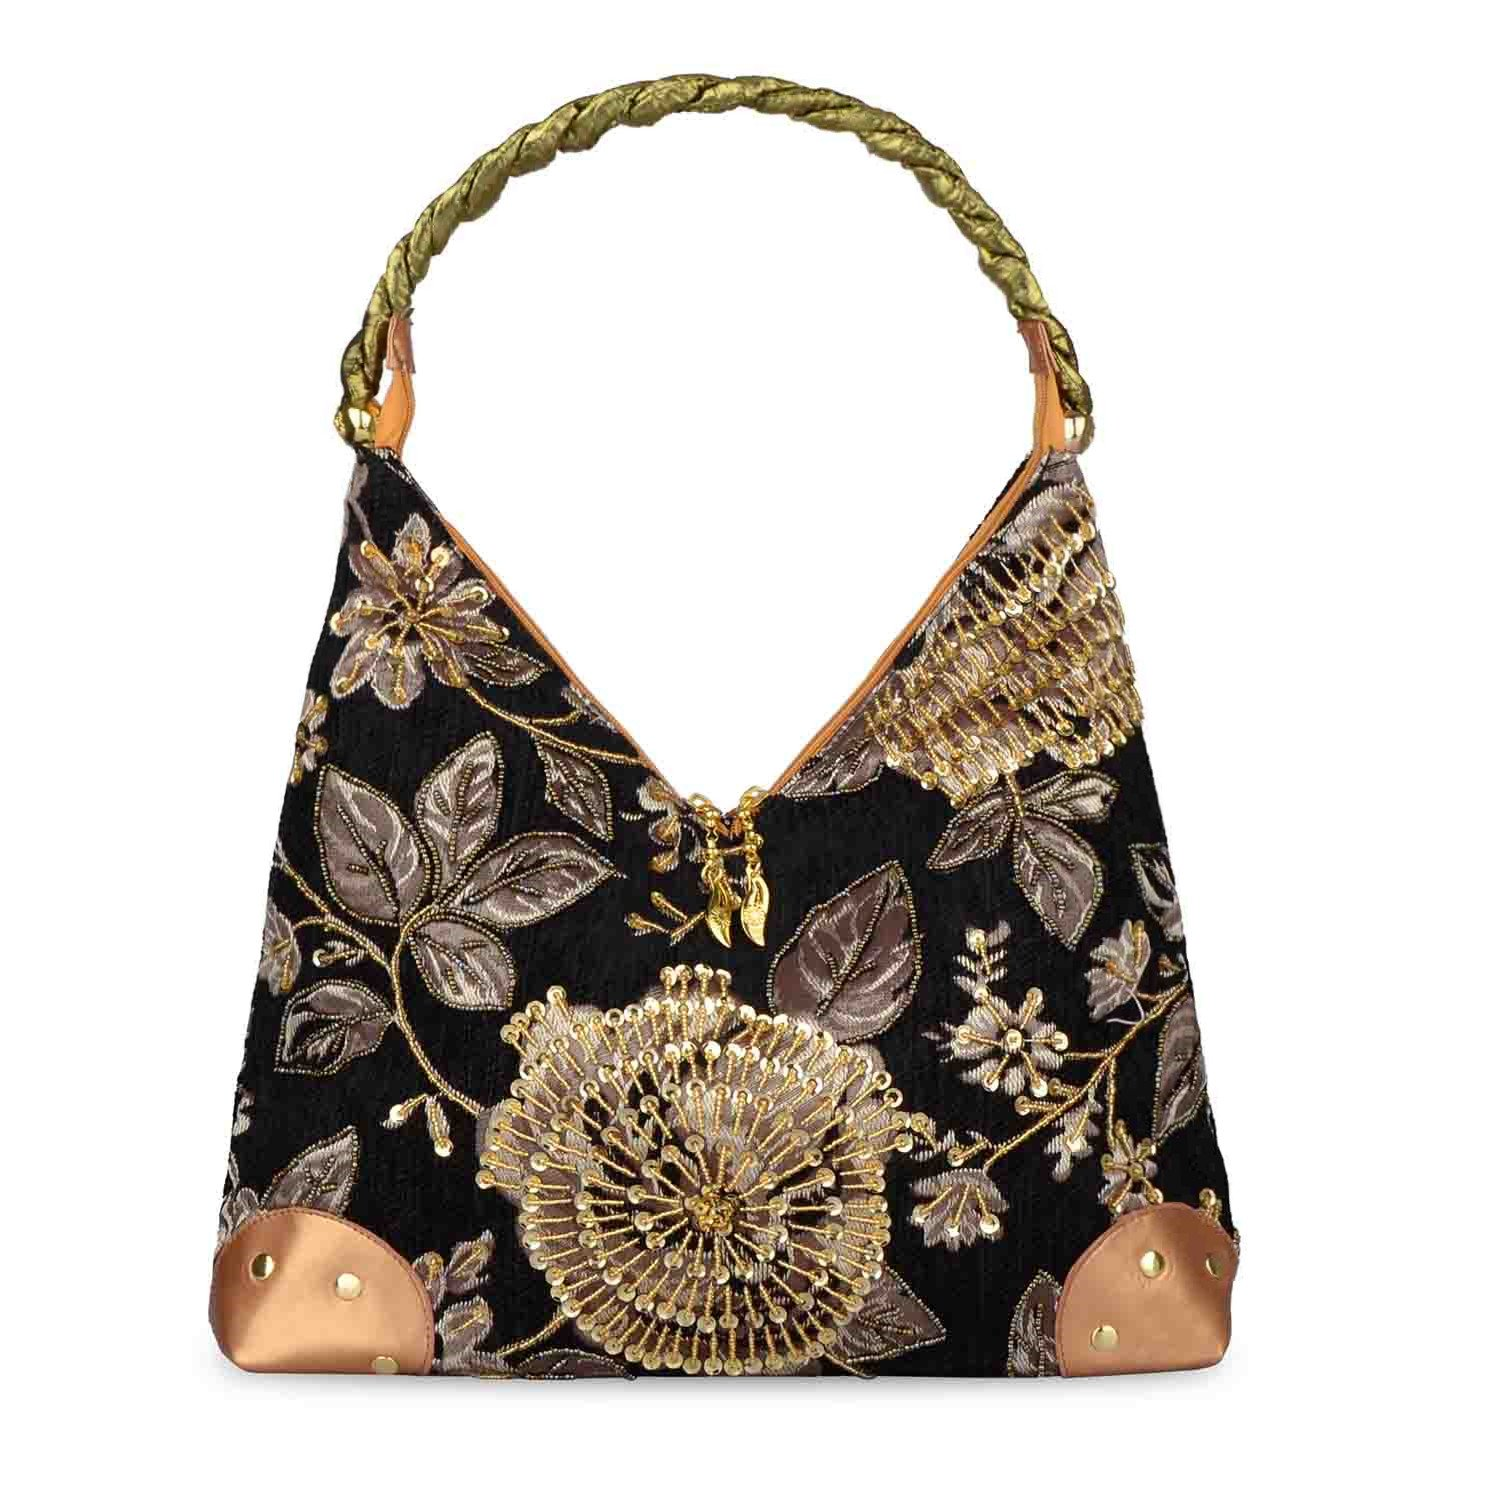 574302fa6d20 ... Handbag Single Shoulder Bag Female Bag. Wholesale Price:31.99 ▷ Unique  retro wind design, selection of high-quality embroidery tablets, ...